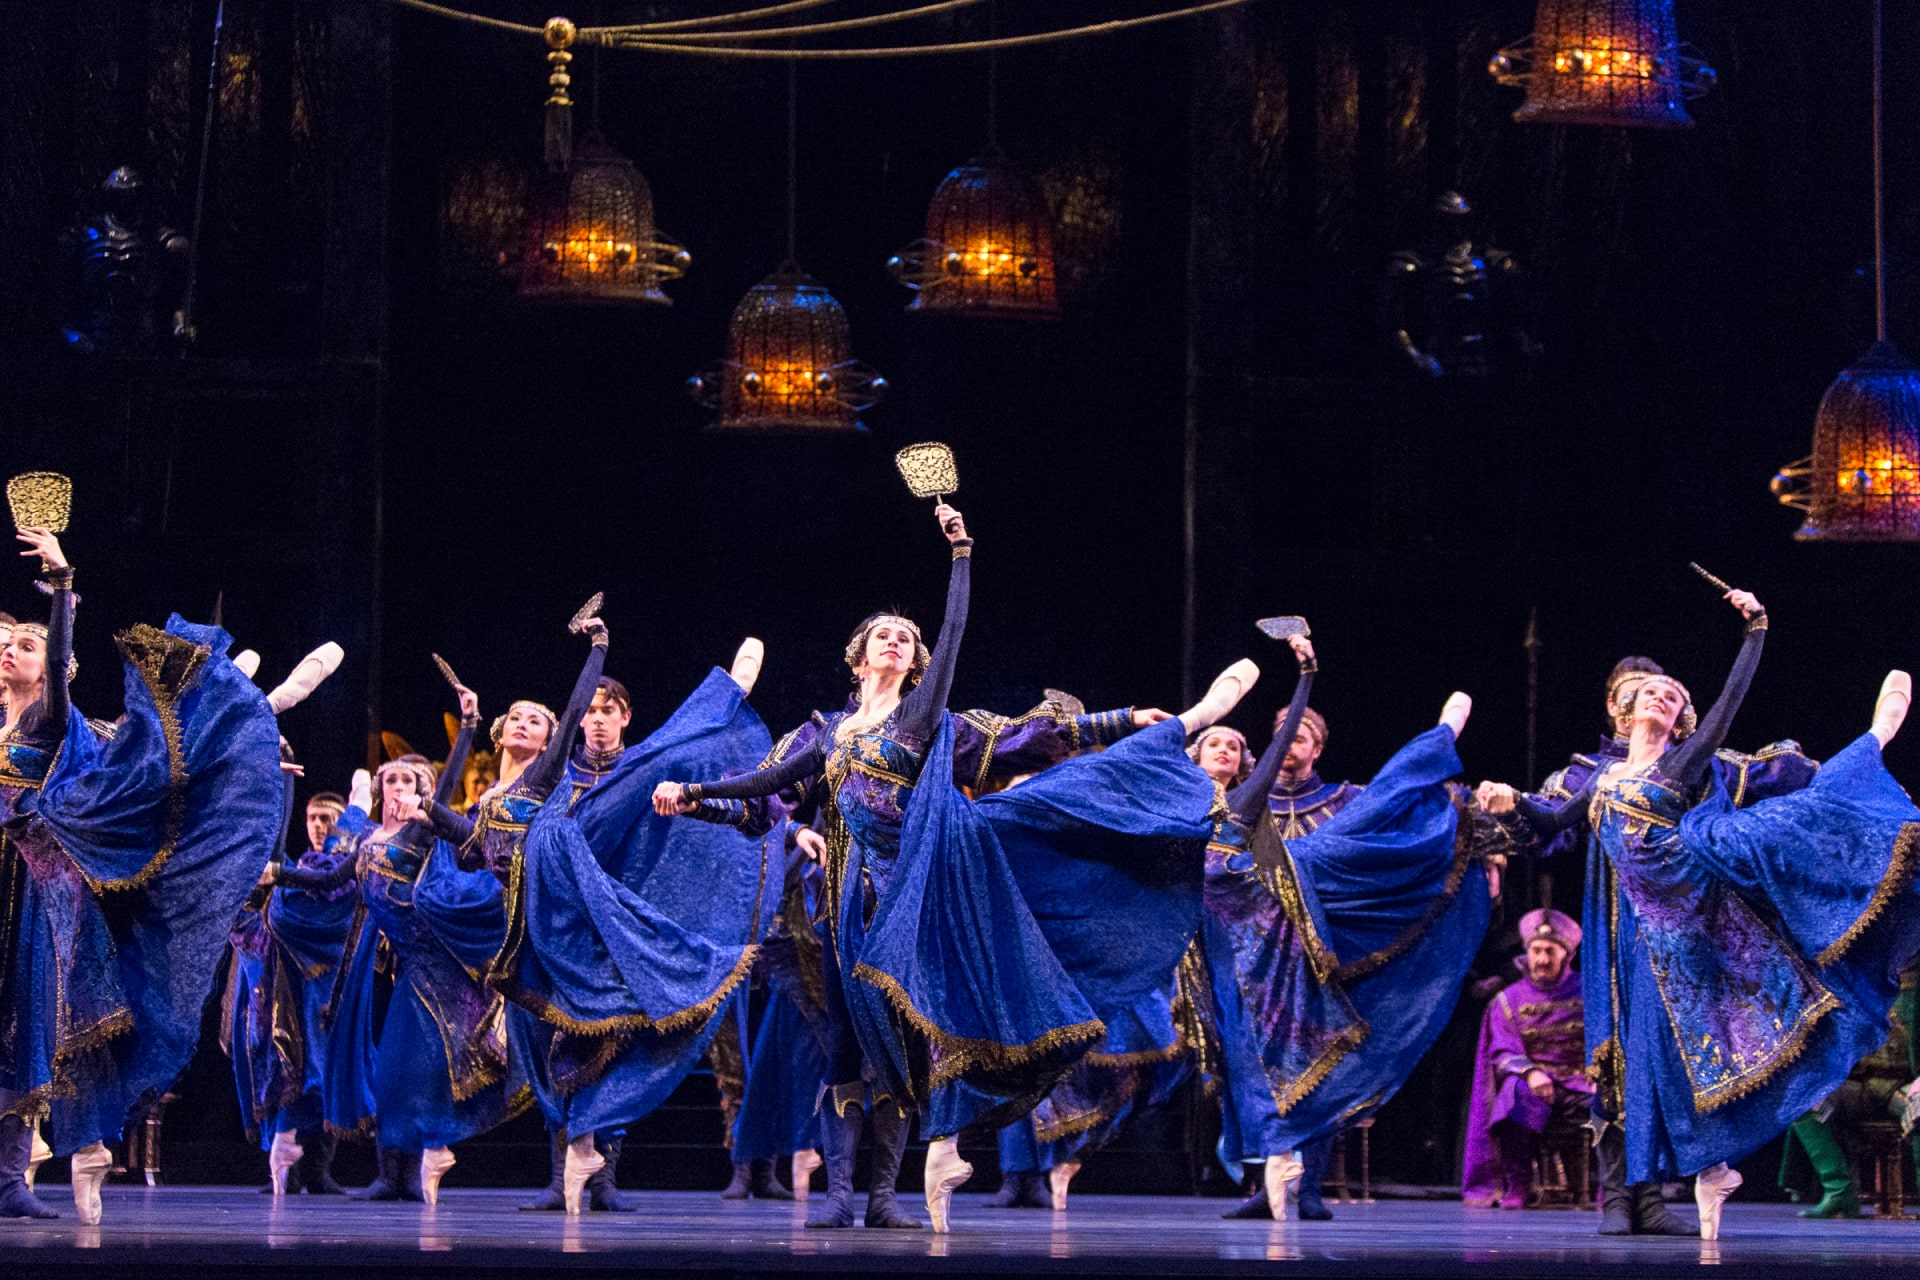 Ballerinas in blue dresses raise hand mirrors on point under amber glass hanging lamps.